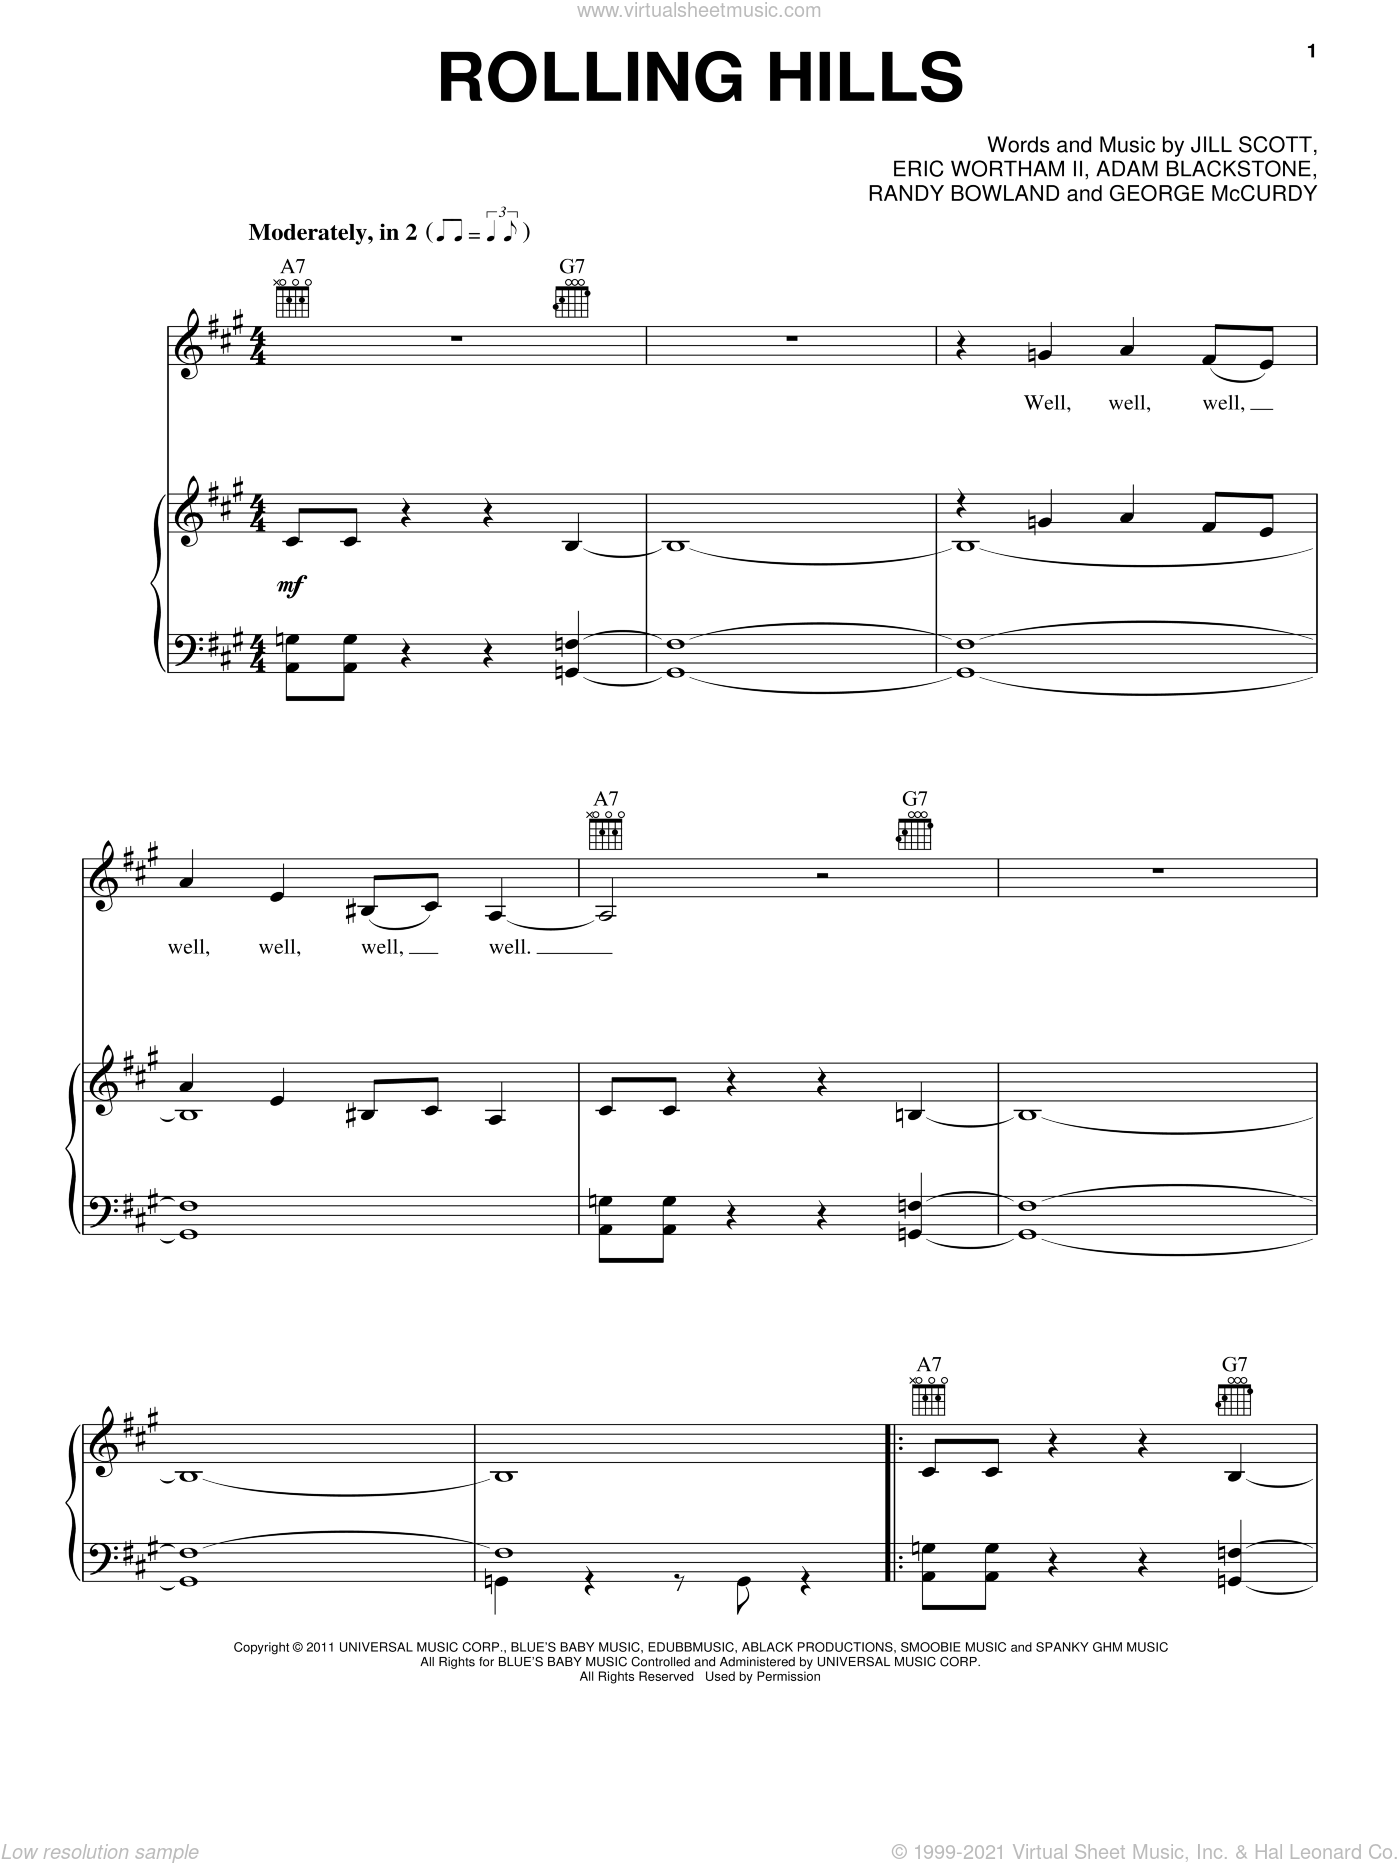 Rolling Hills sheet music for voice, piano or guitar by Jill Scott, Adam Blackstone, Eric Wortham II, George McCurdy and Randy Bowland, intermediate skill level